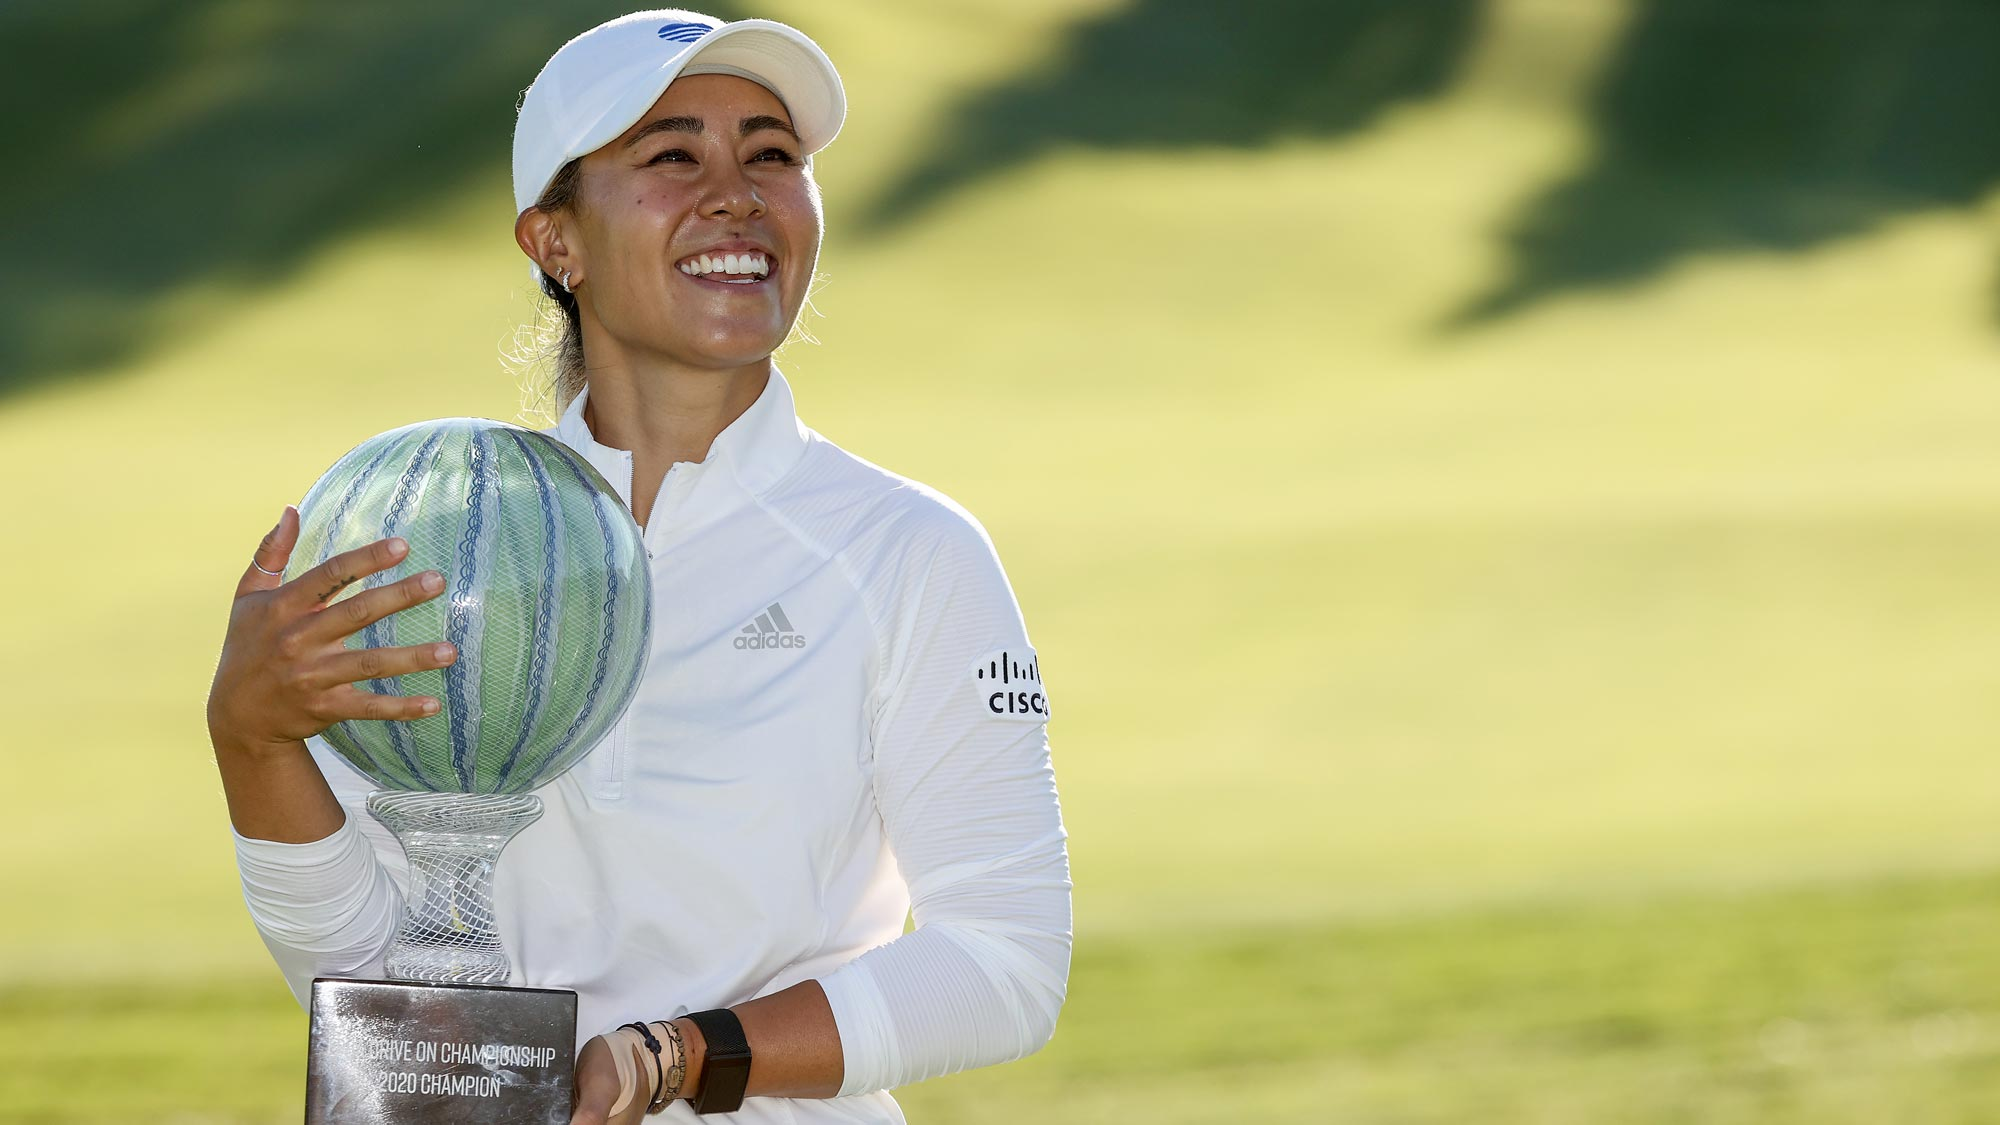 Danielle Kang celebrates with the trophy on the 18th green after her -7 under par final round victory in the LPGA Drive On Championship